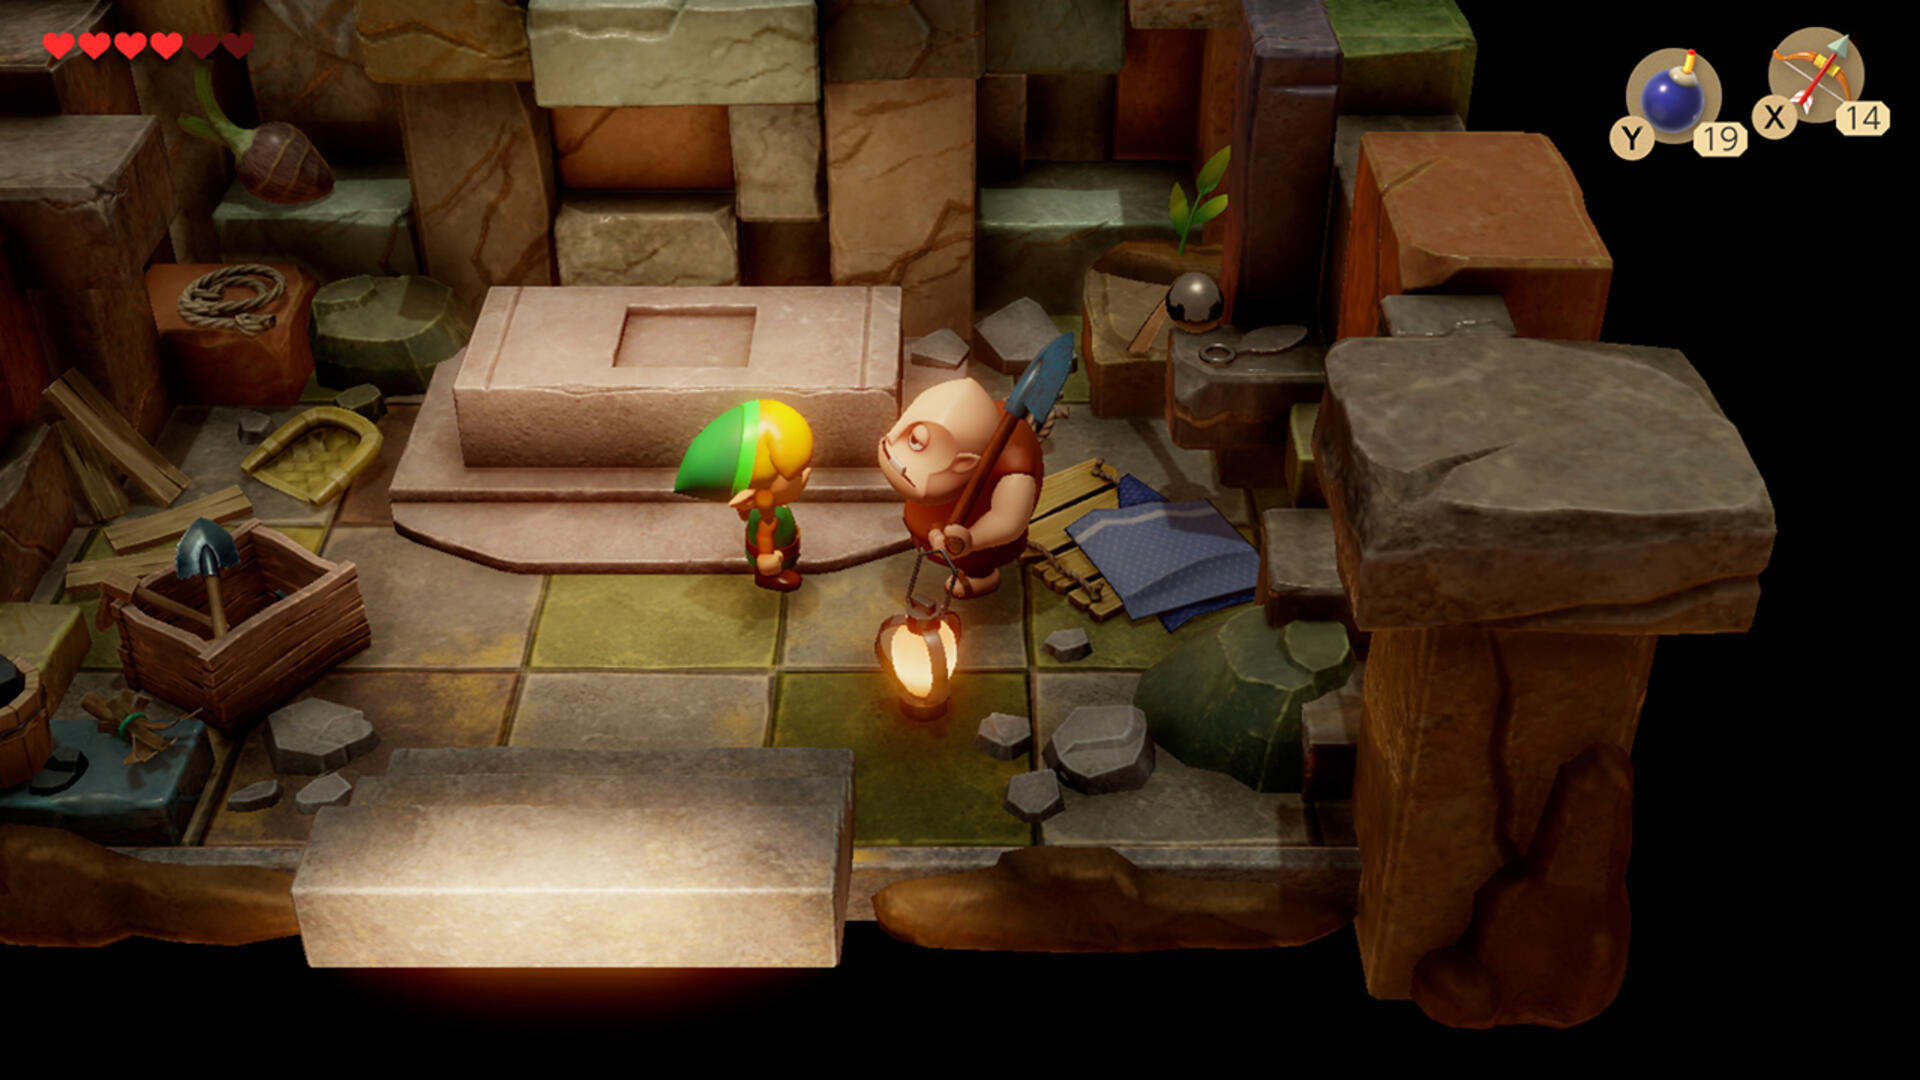 New Areas Uncovered in The Legend of Zelda: Link's Awakening E3 Demo